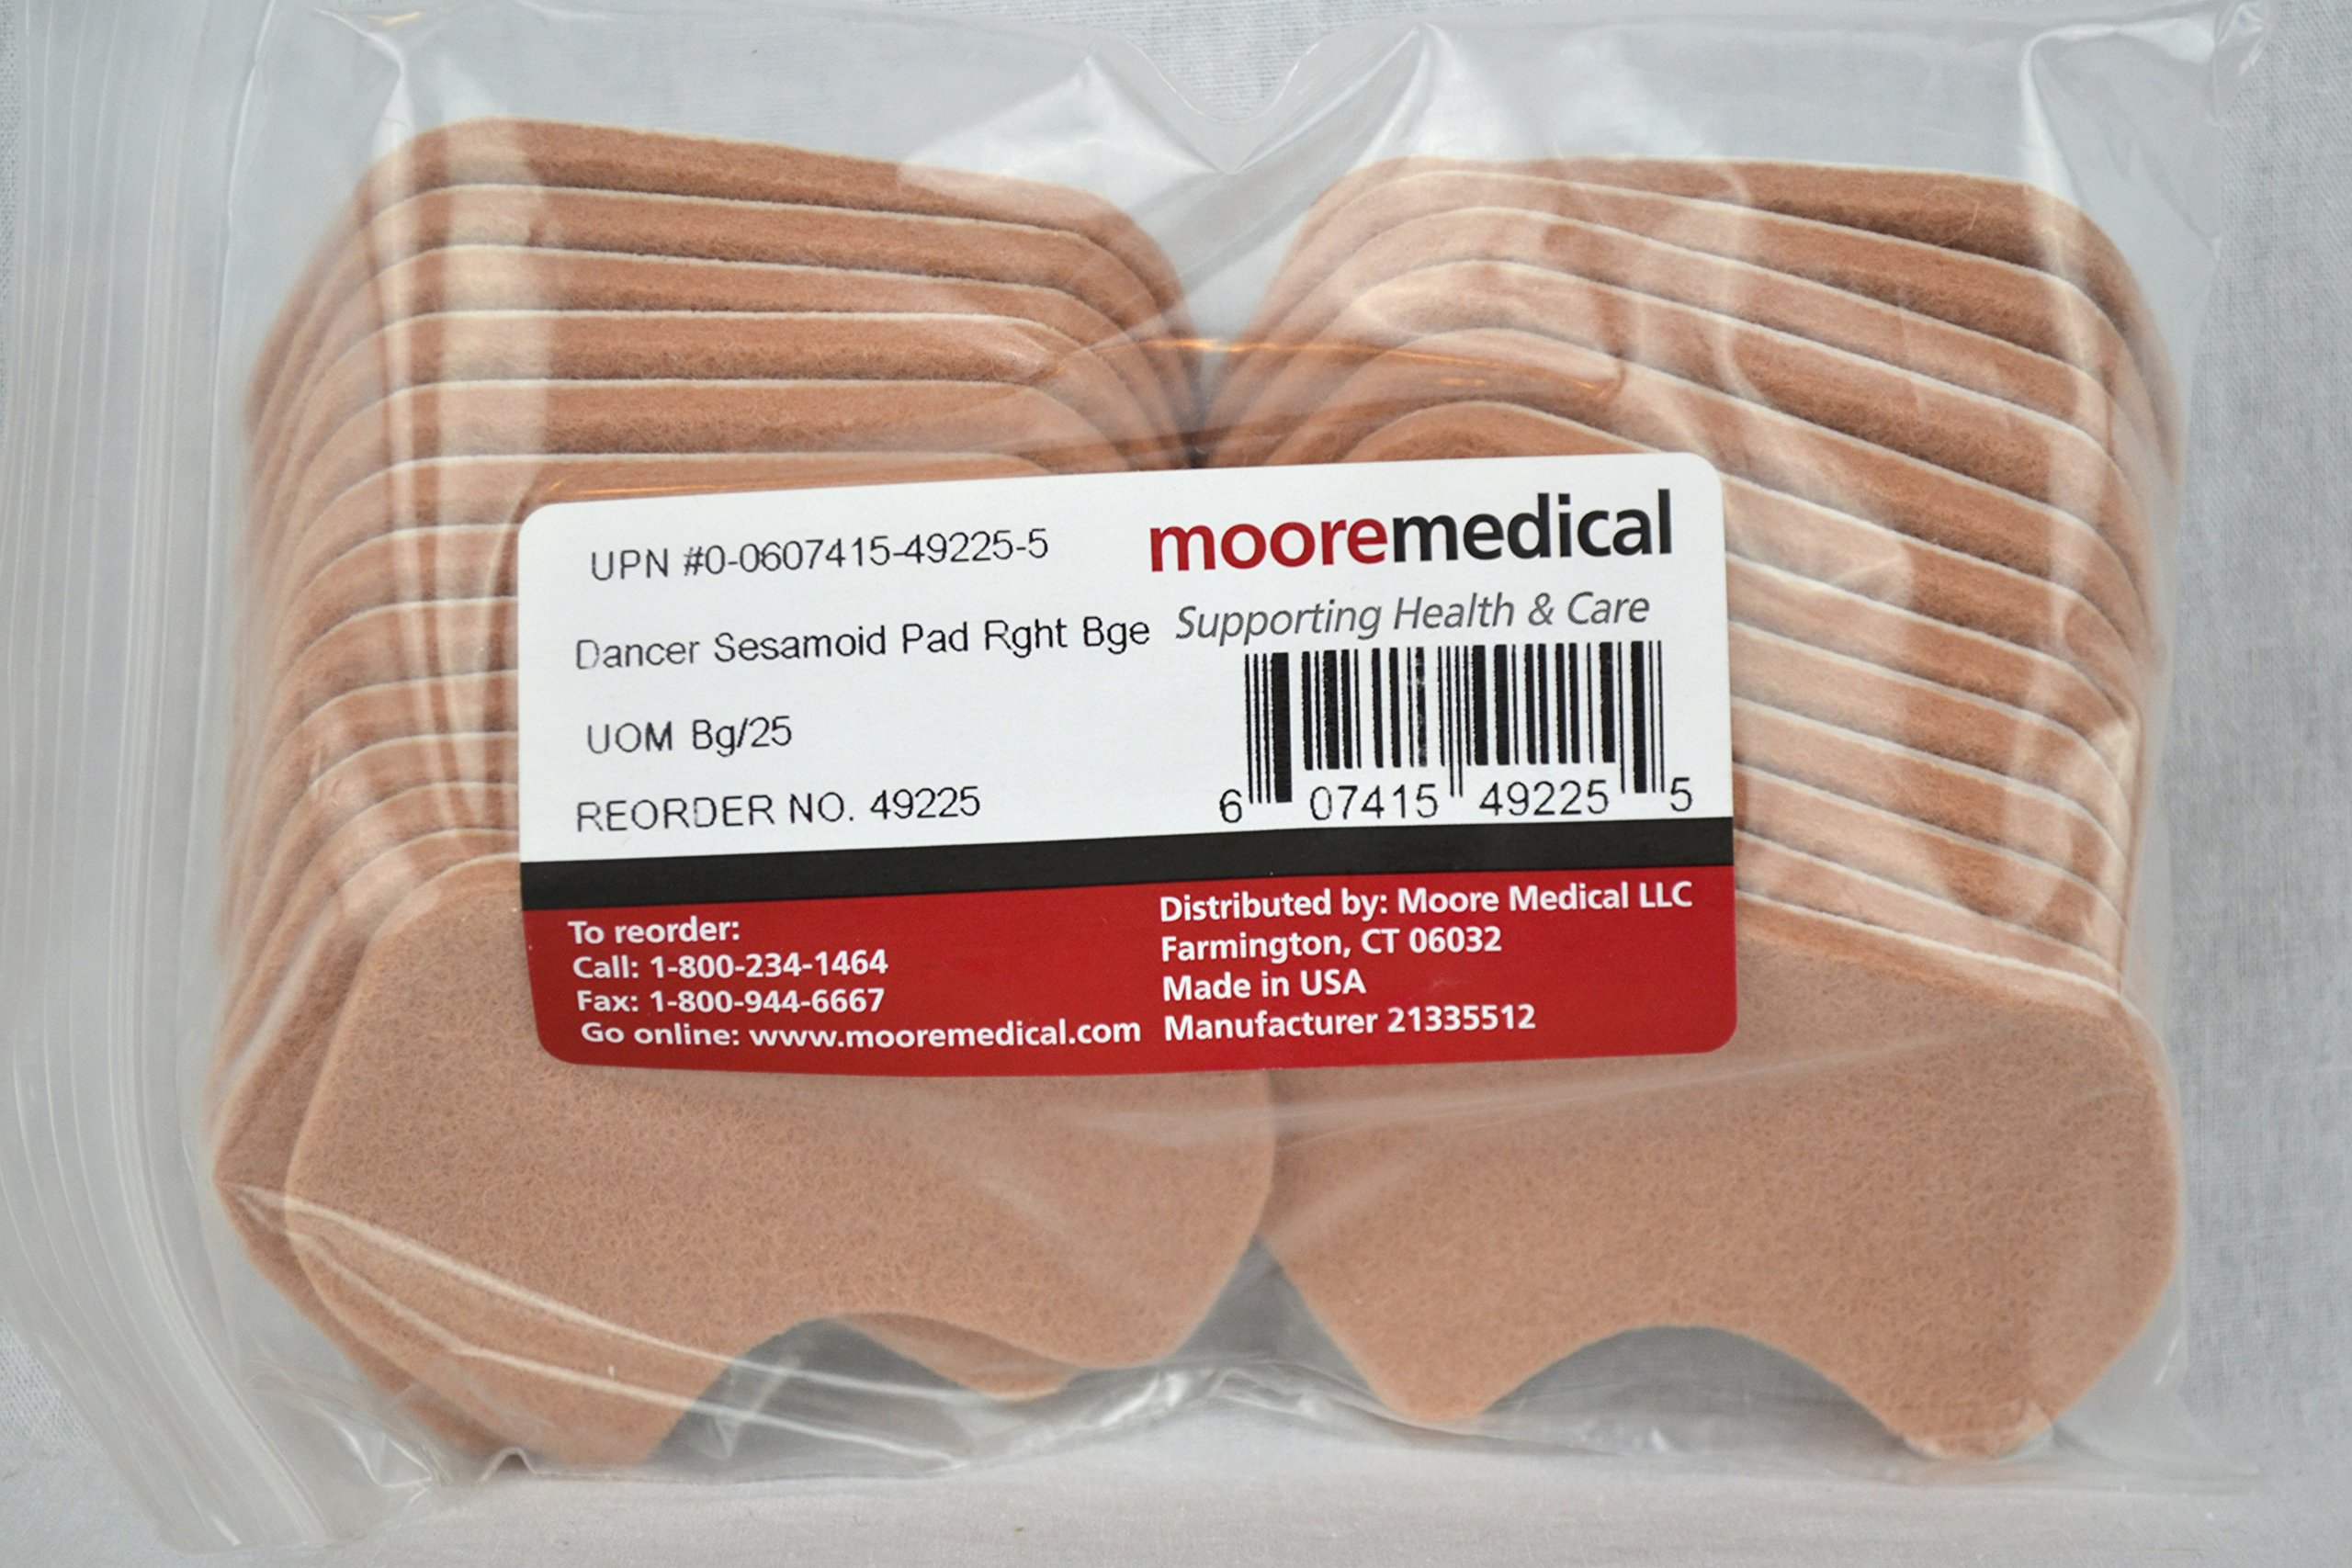 Moore Medical Dancer Sesamoid Pad Right Beige - Bag of 25 by MOORE Medical